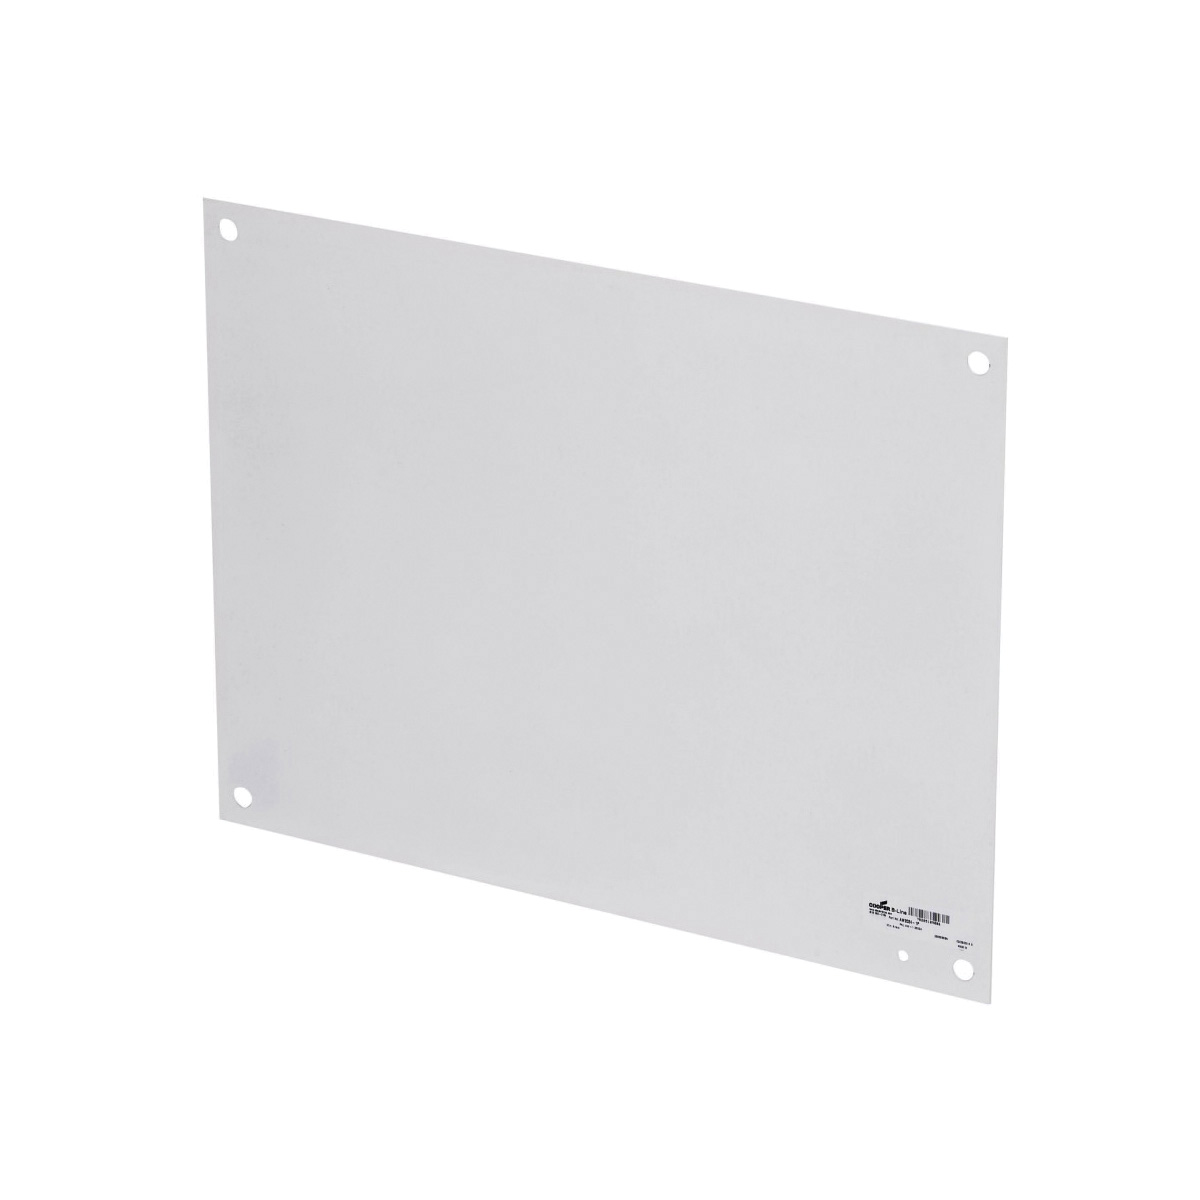 B-Line AW1616-1P Flat Enclosure Panel, 14-1/2 in W x 13 in H, Steel, White